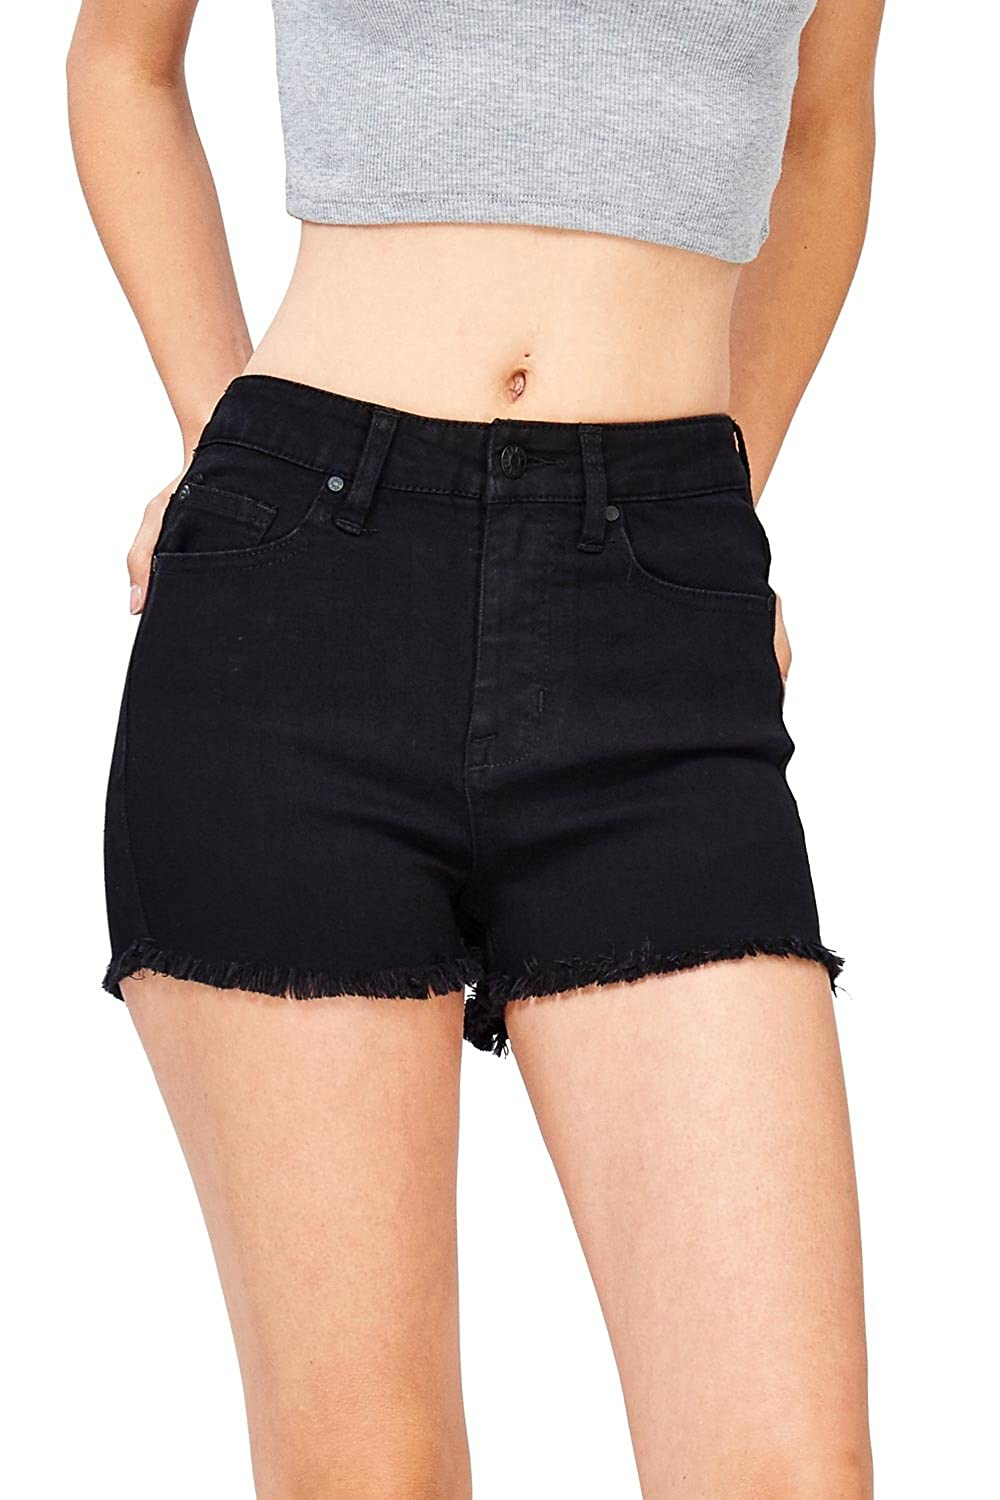 Celebrity Pink Women's Juniors High Waist Stretchy Denim Shorts